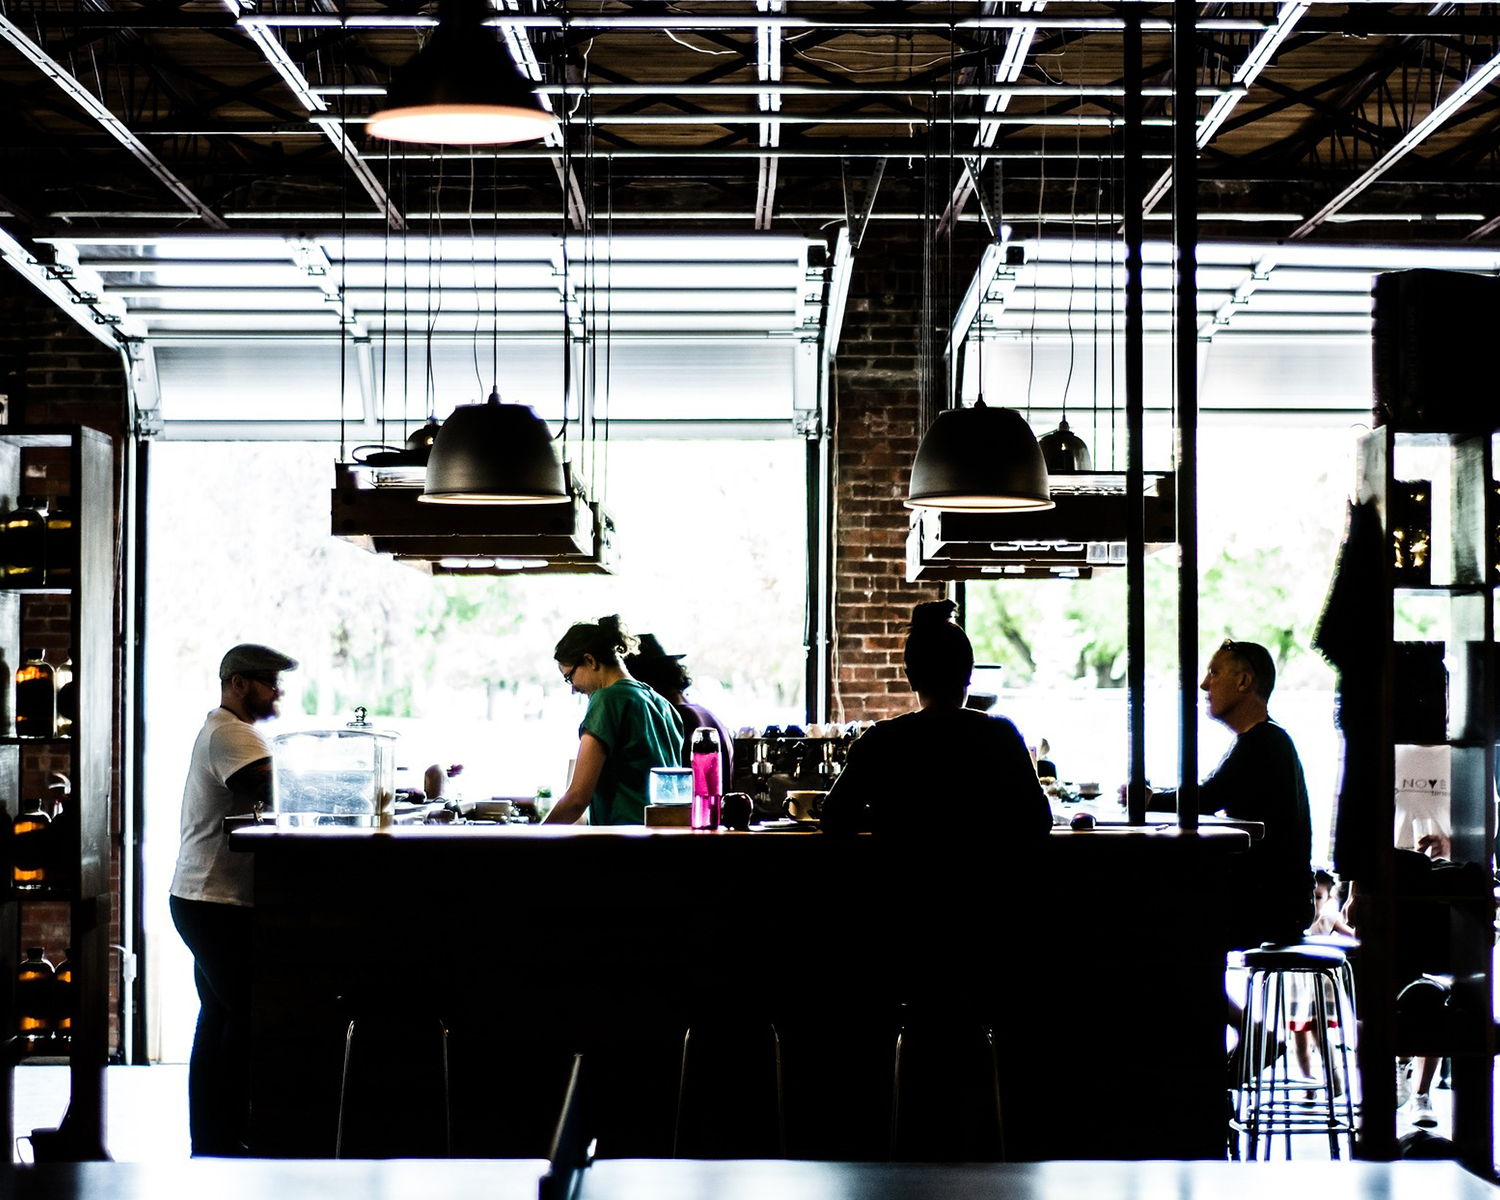 How to Improve Team Communication with Restaurant Staff and Management